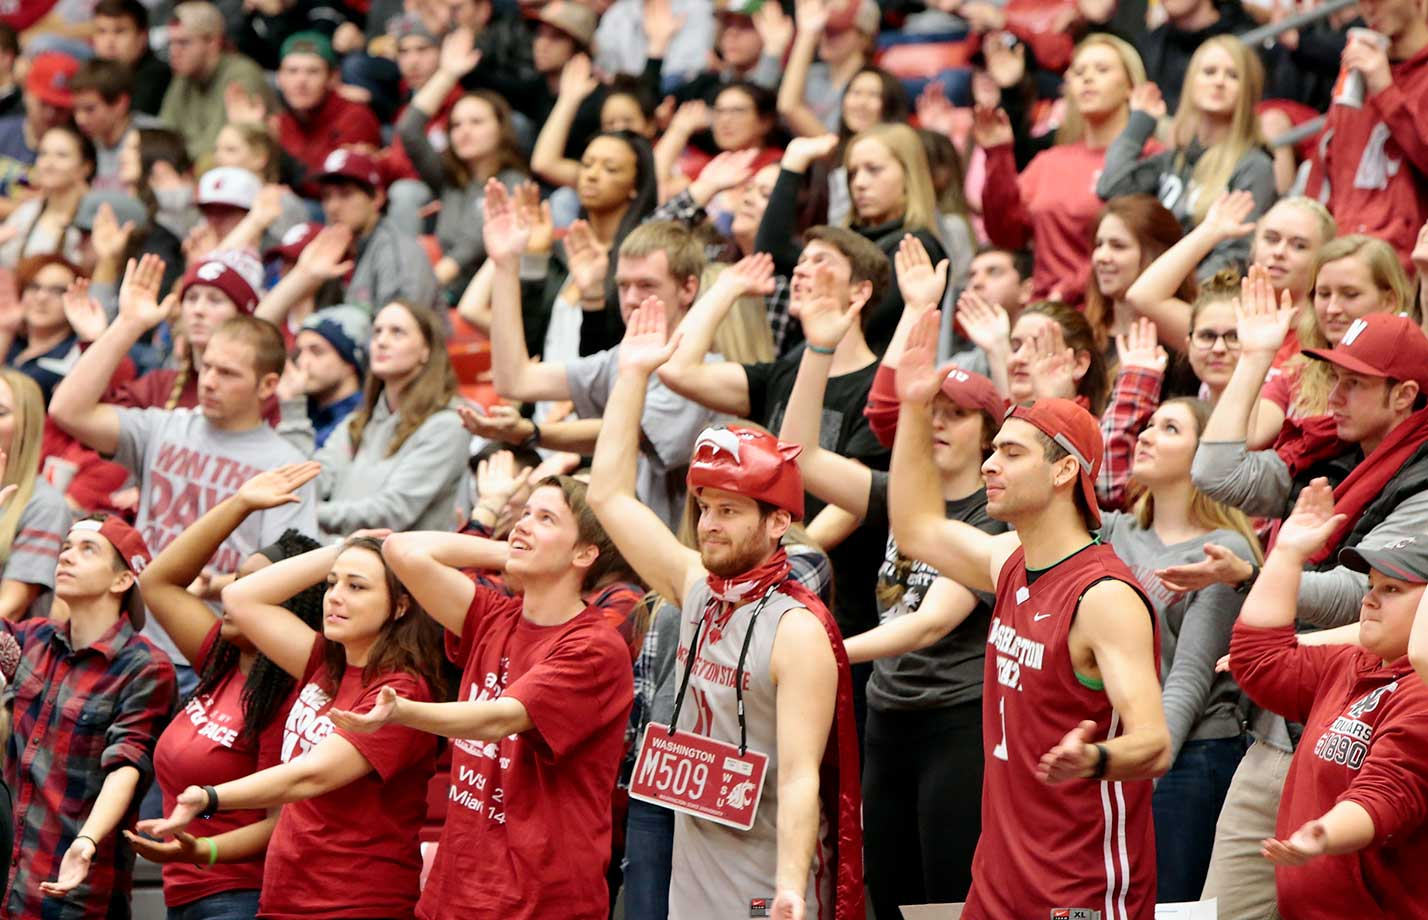 Fans for the Washington State Cougars cheer for their team during the game against the Colorado Buffaloes at Beasley Coliseum in Pullman, Wash.  Colorado defeated Washington State 75-70.